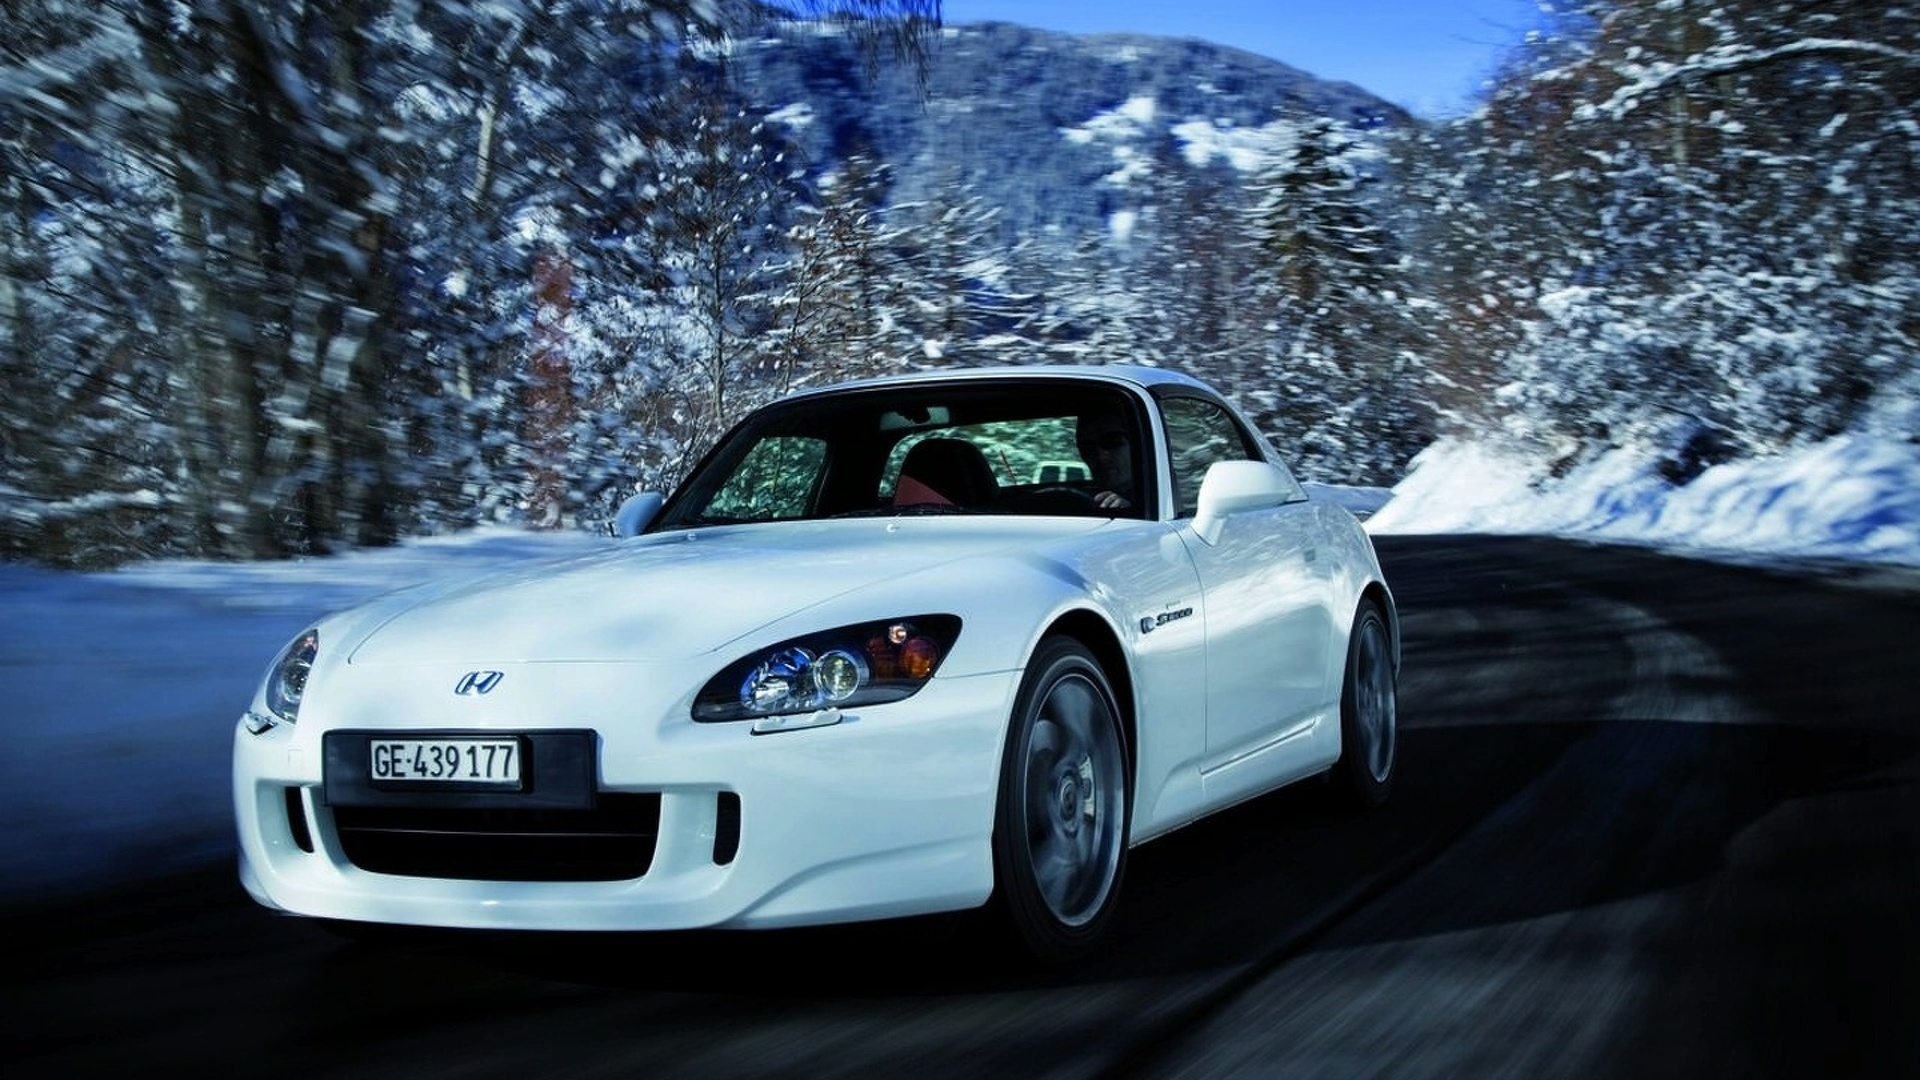 2017 Honda S2000 >> Honda S2000 Revival Set For 2017 Launch With 350 Bhp Report